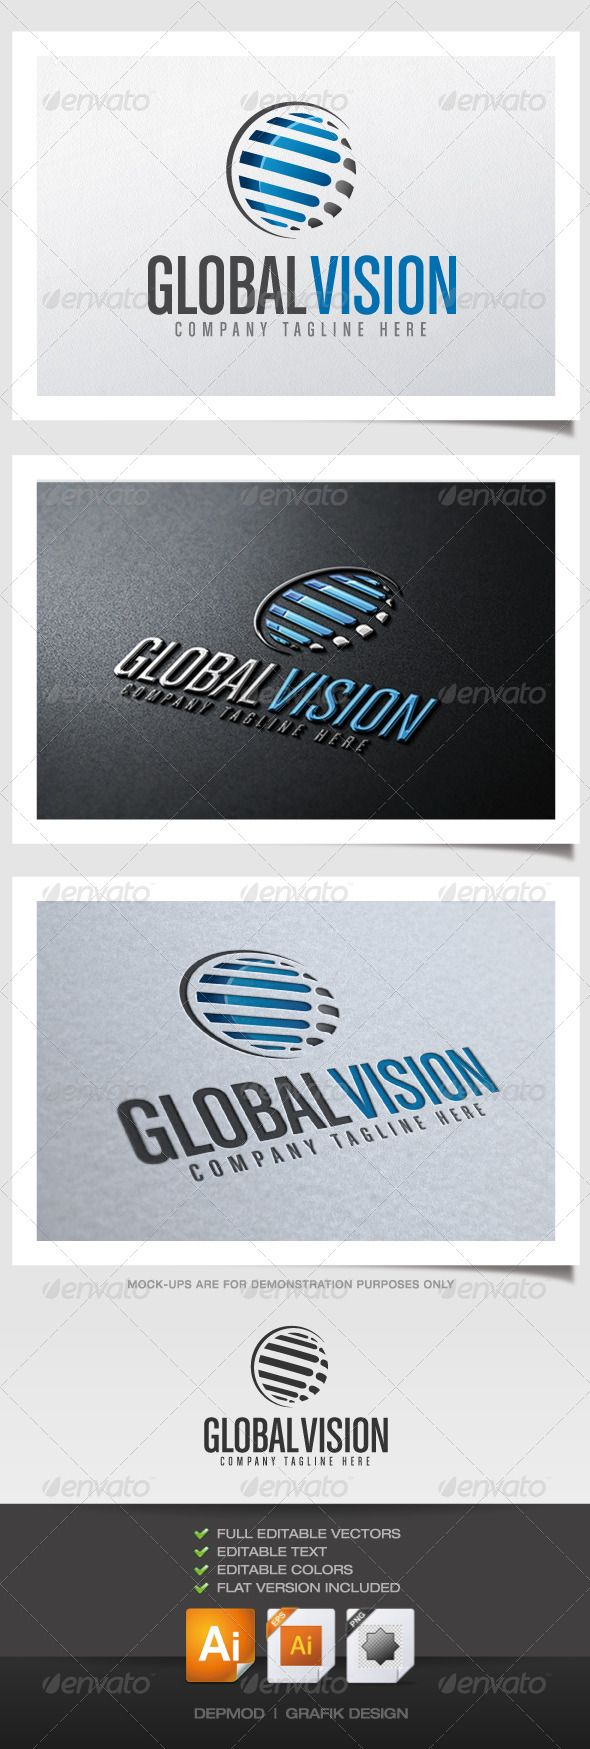 Global Vision Logo — Vector EPS #ribbons #security • Available here → https://graphicriver.net/item/global-vision-logo/4408181?ref=pxcr